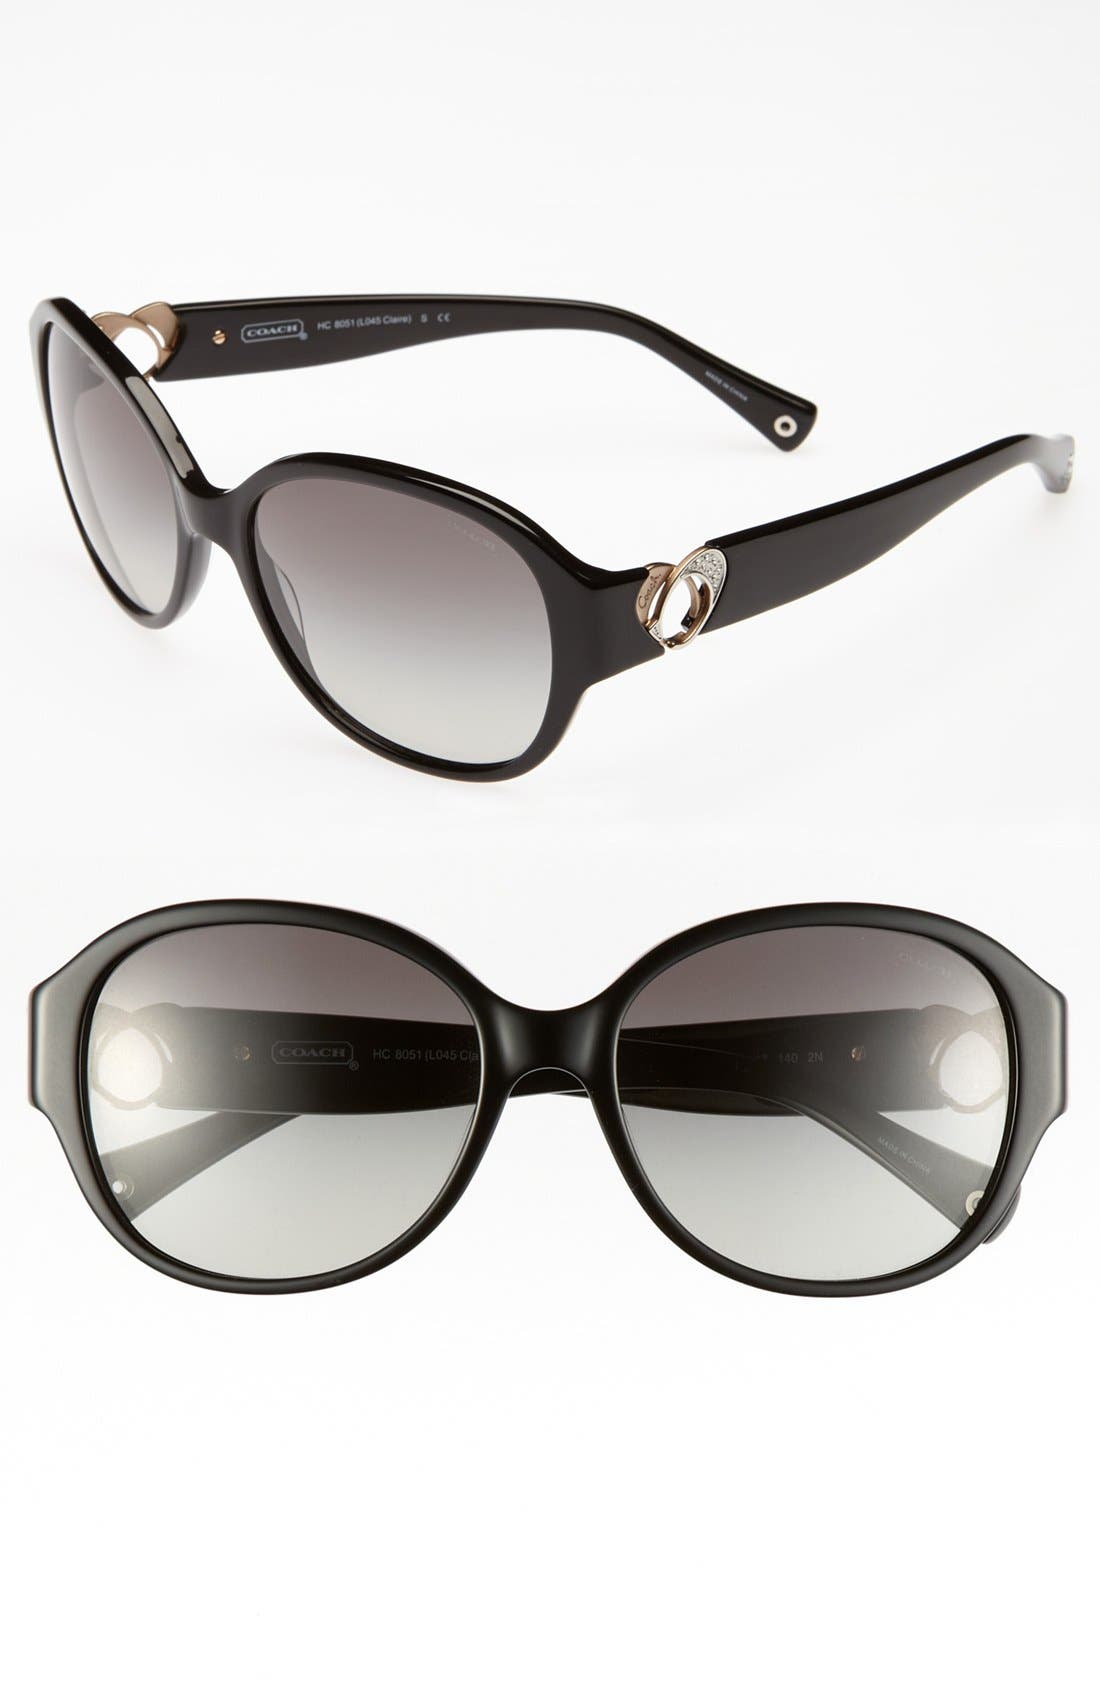 Main Image - COACH 'Claire' 58mm Oversized Sunglasses